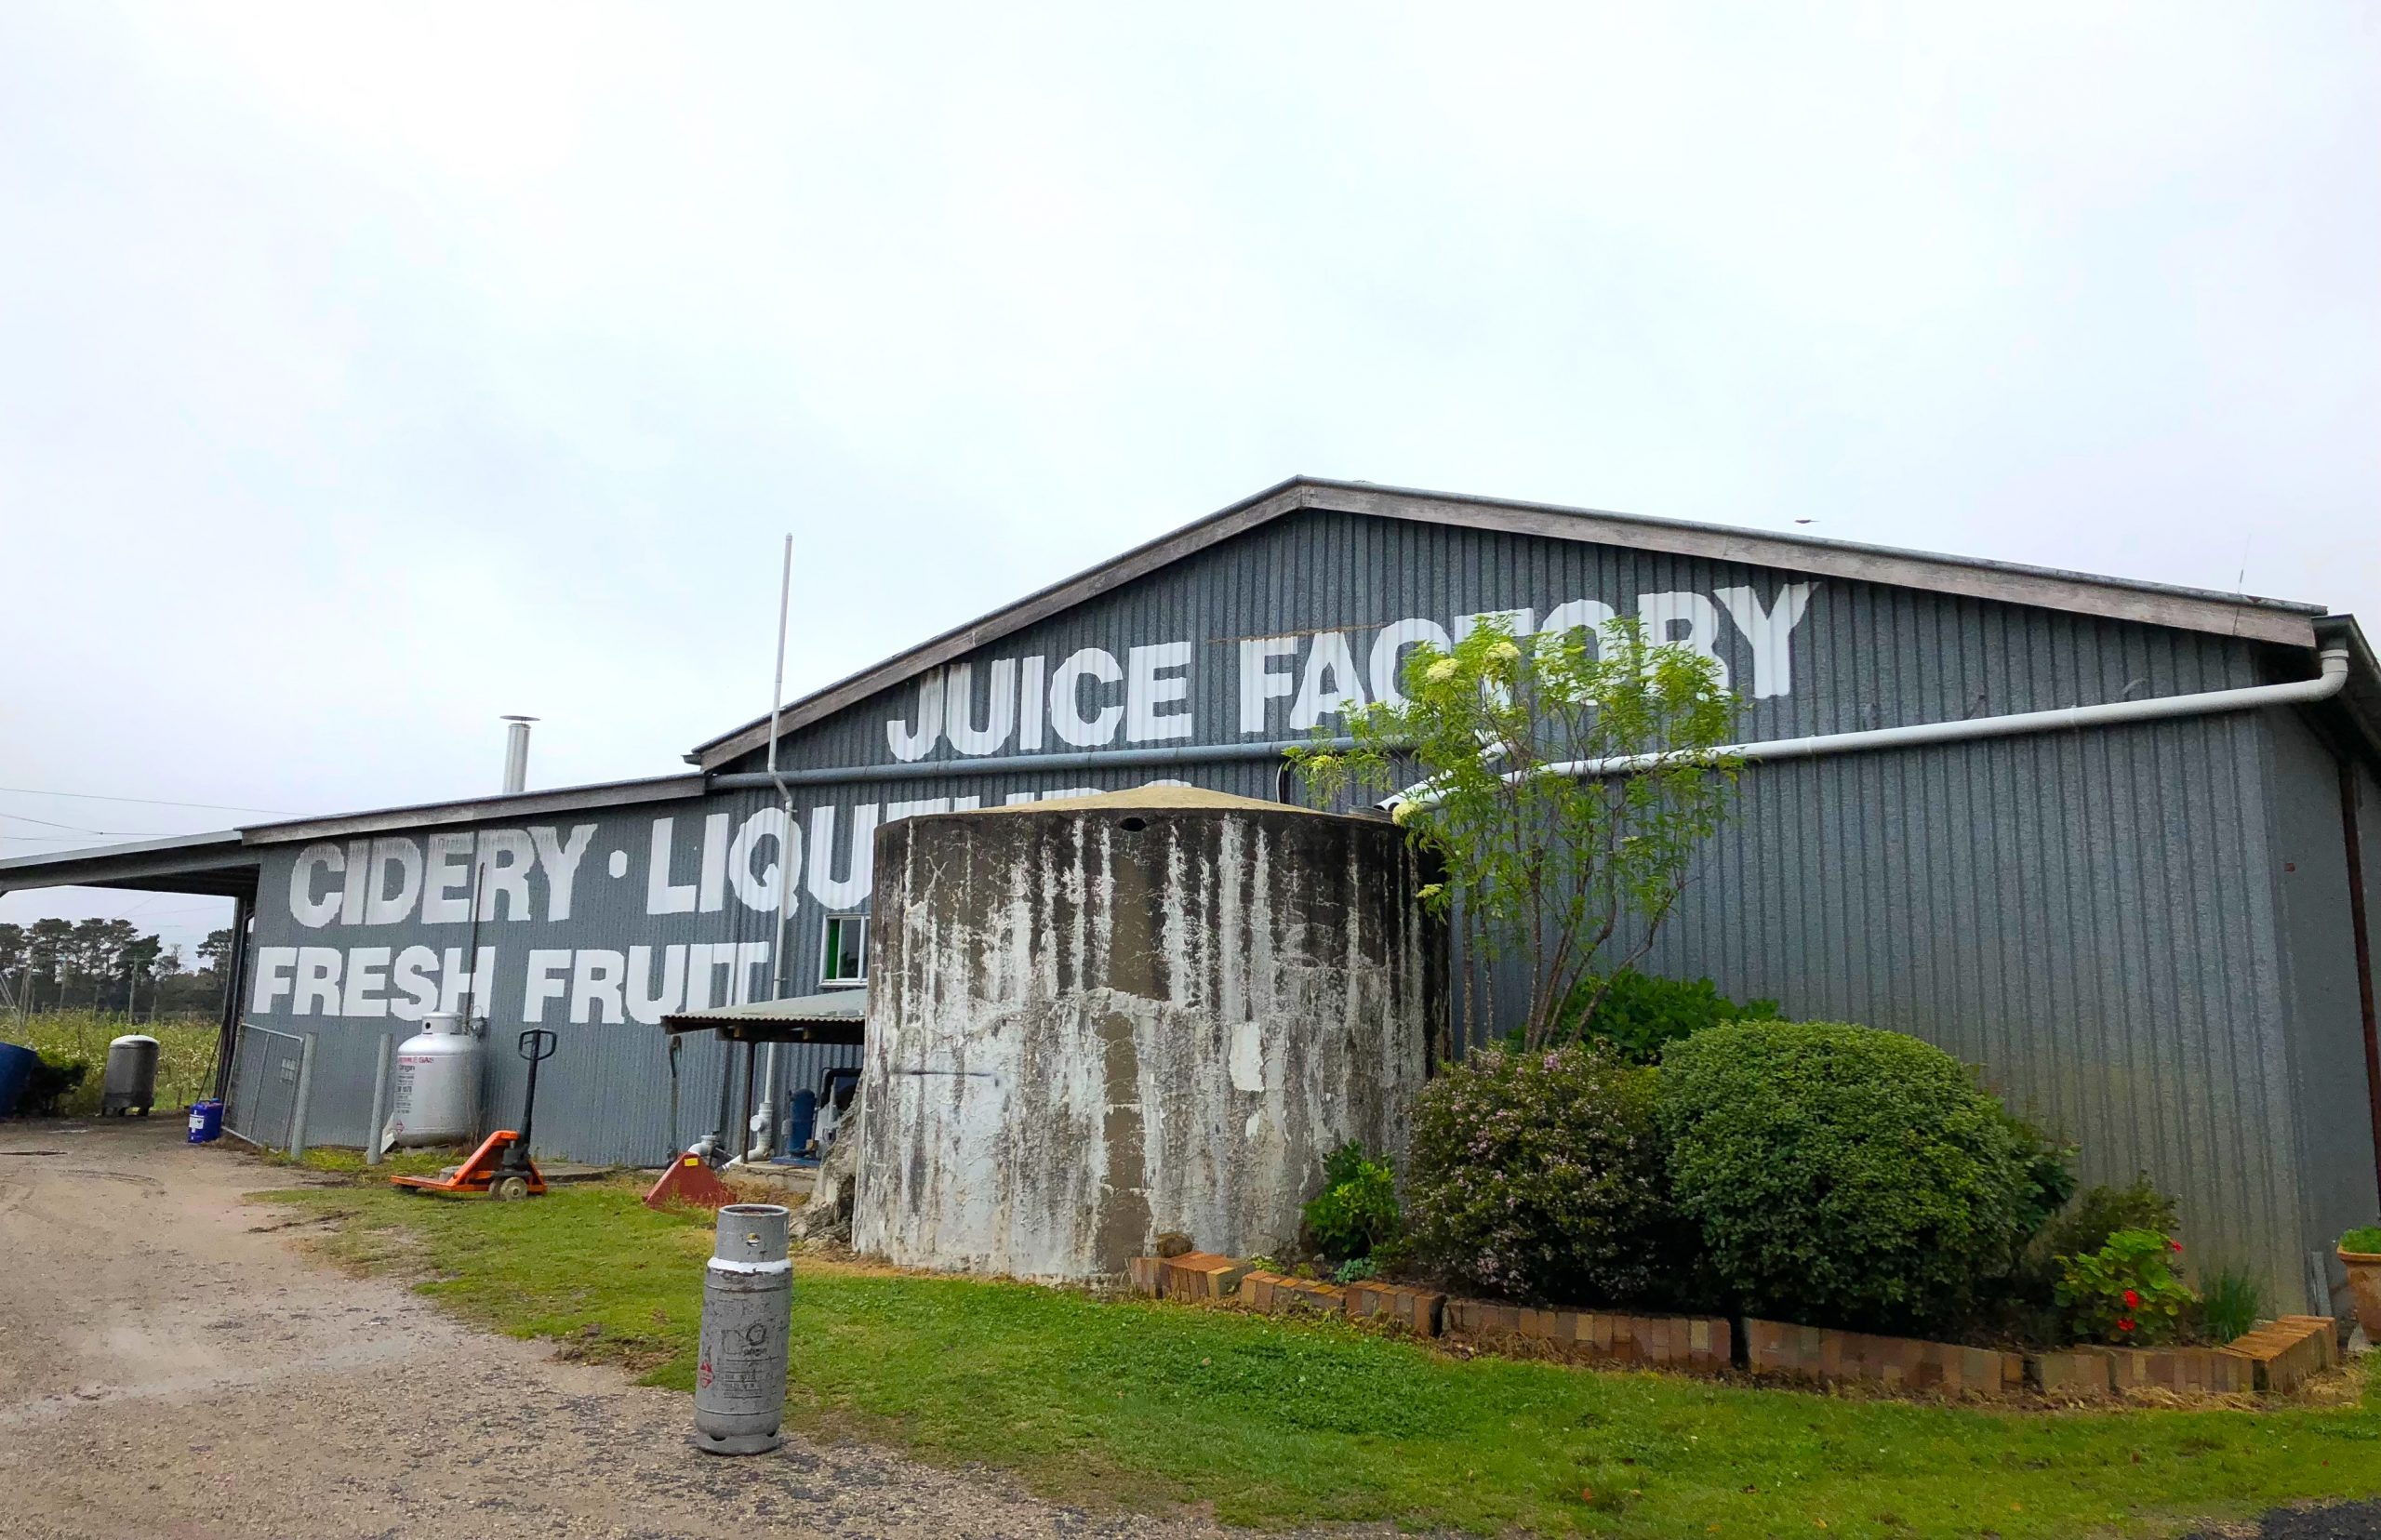 Sutton's Juice Factory Cidery and Cafe